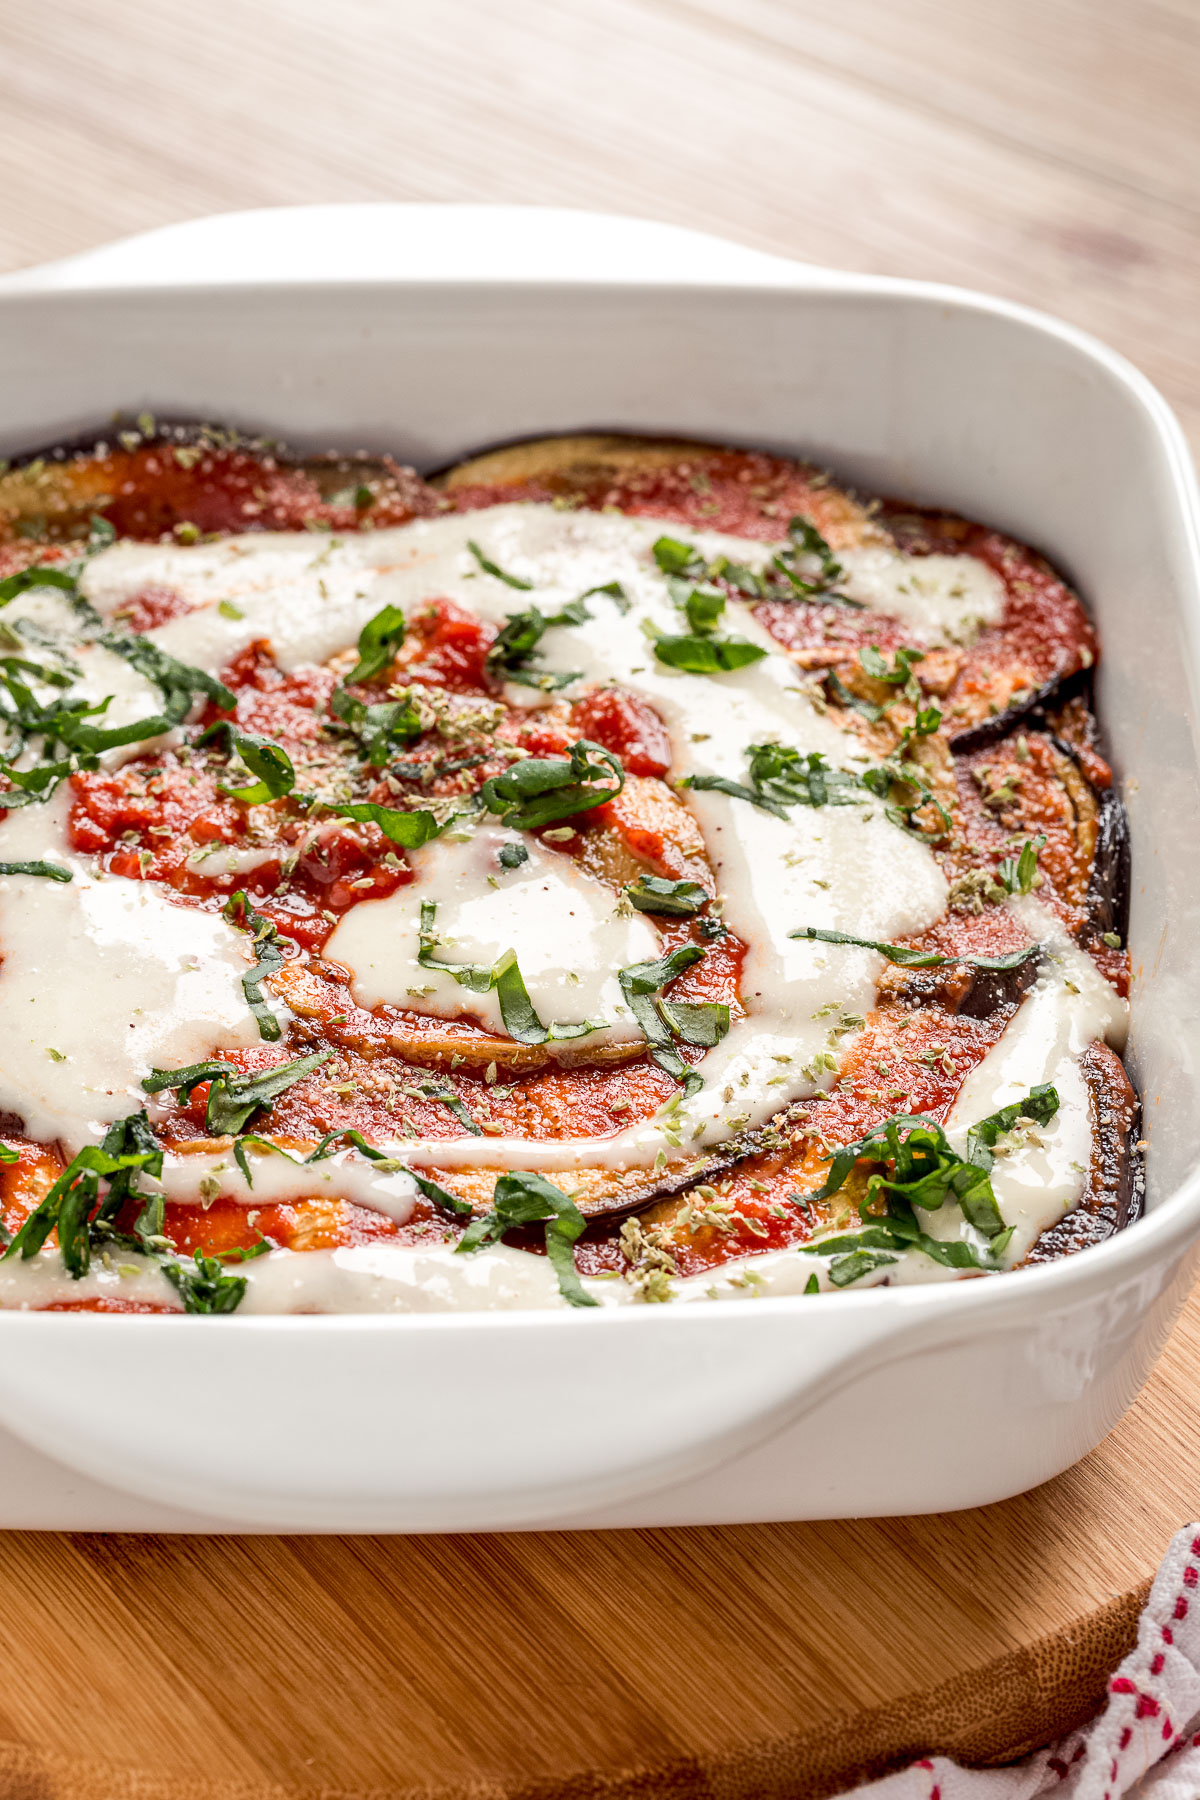 come preparare le MELANZANE alla PARMIGIANA VEGAN LIGHT al FORNO How to make Italian Vegan EGGPLANT PARMESAN with homemade vegan mozzarella cheese